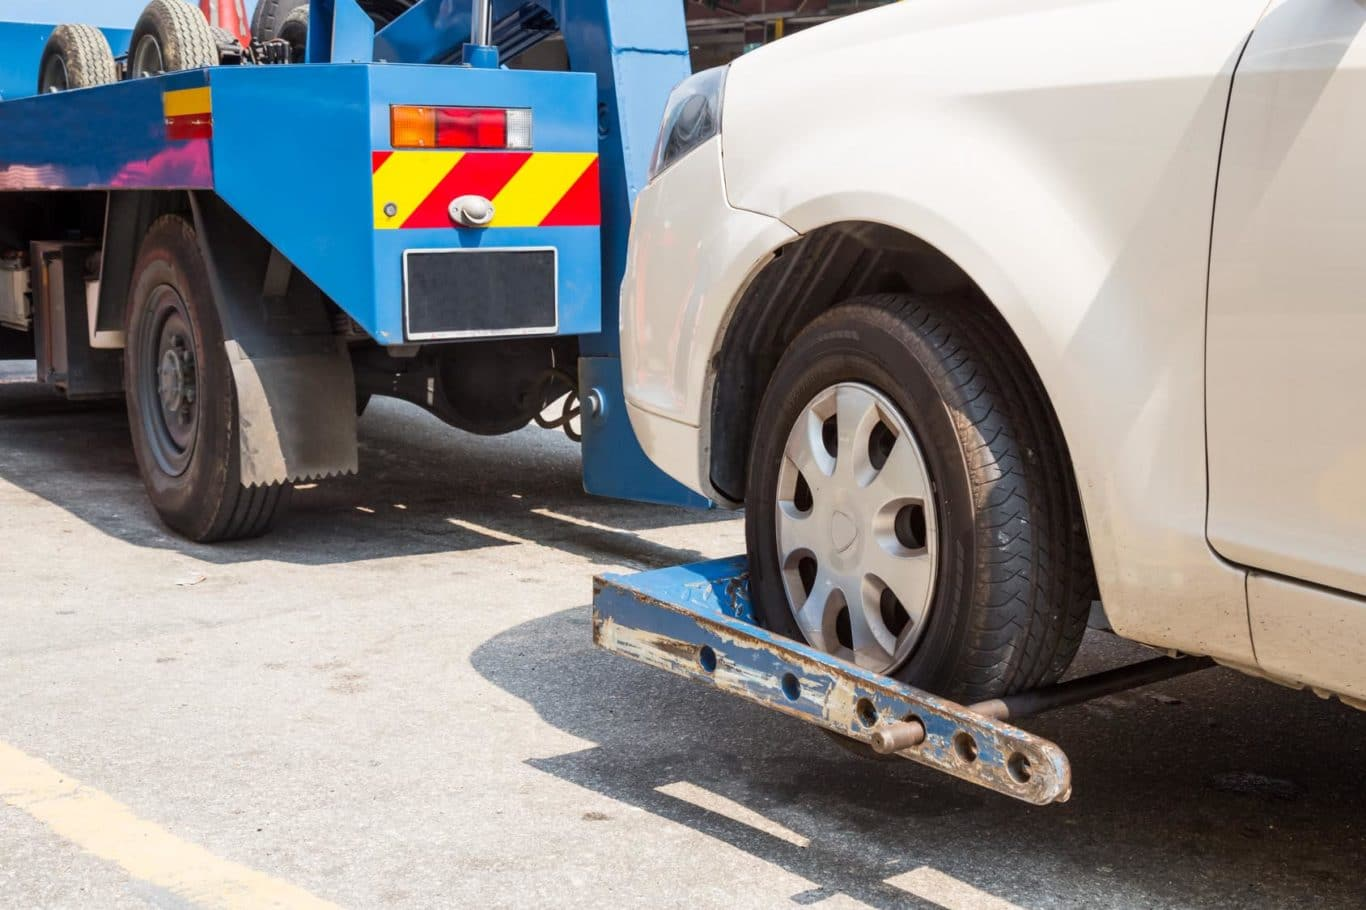 Whitechurch expert Car Towing services